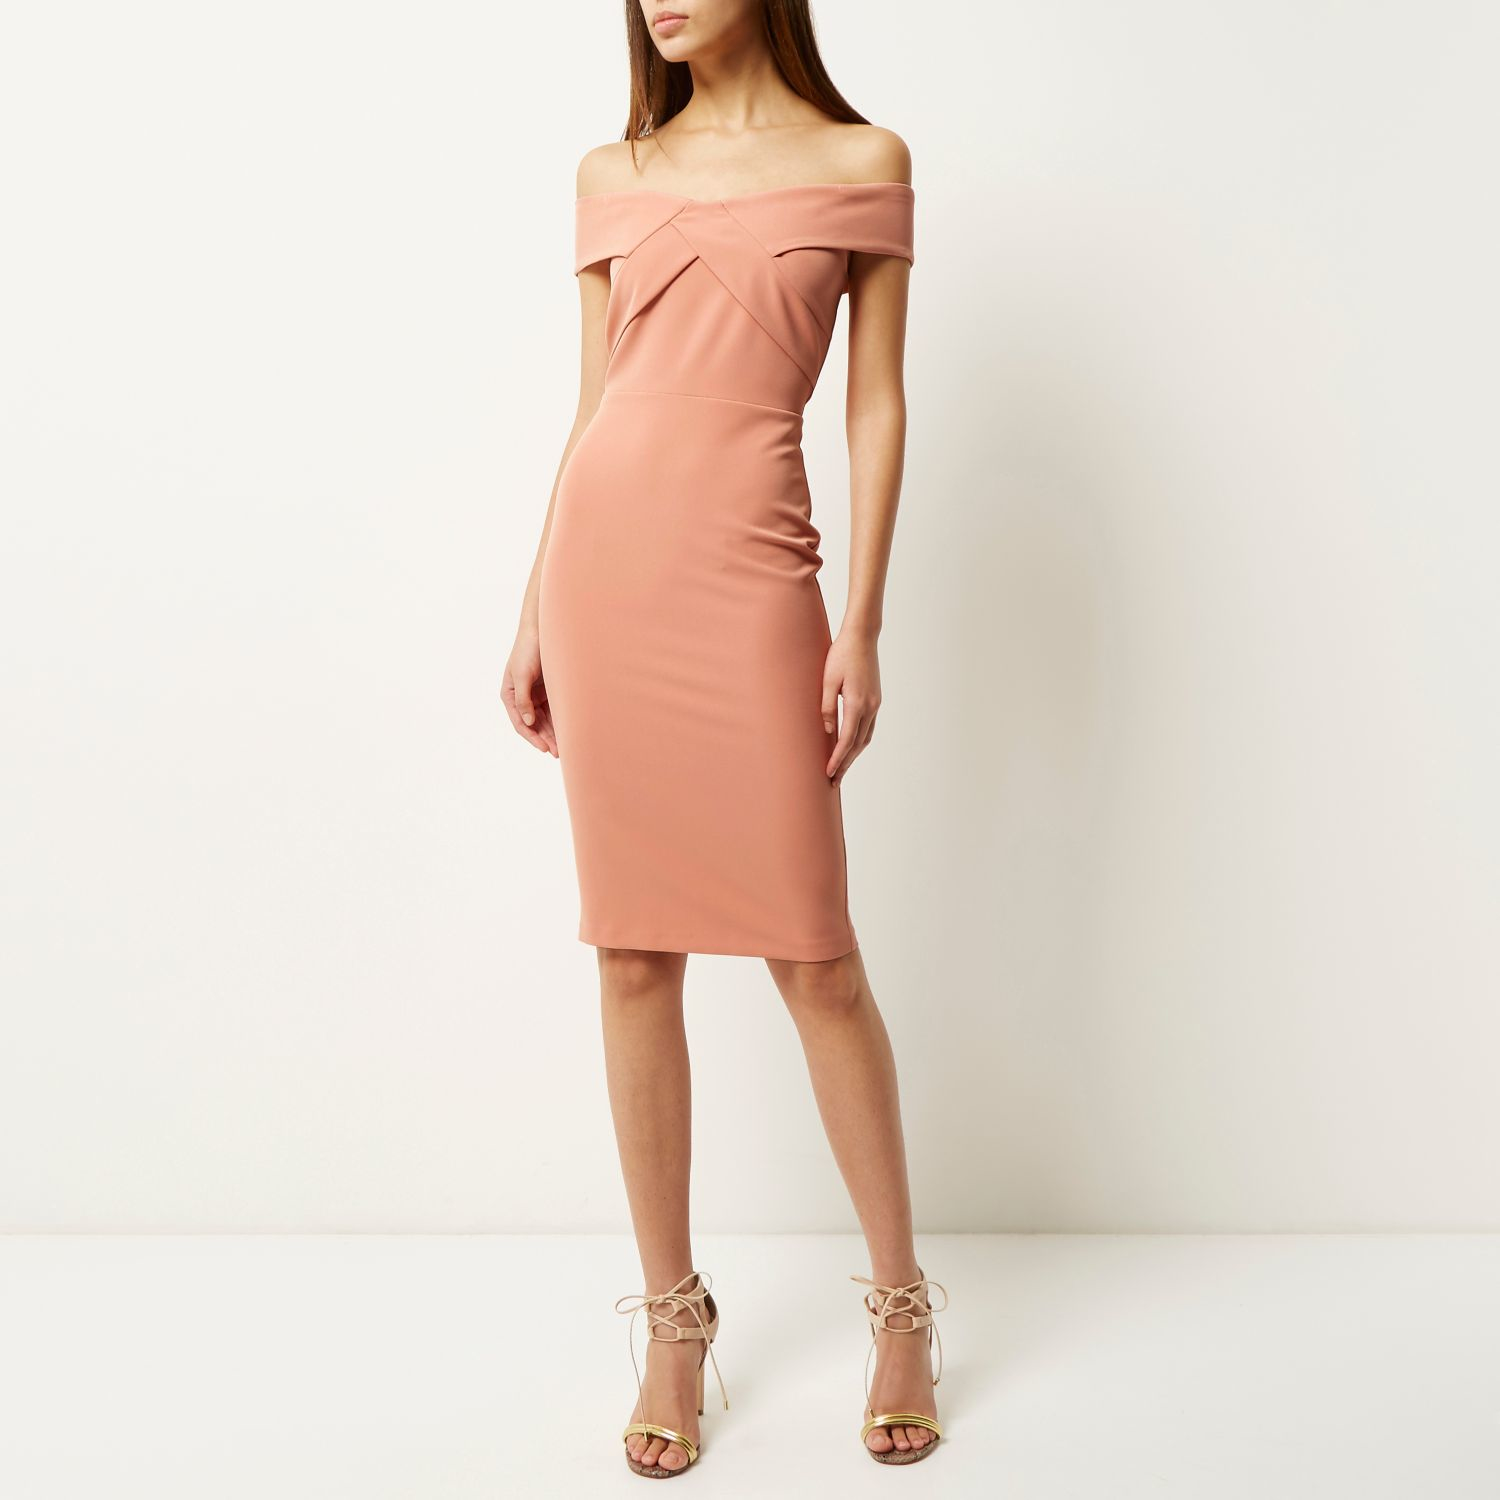 Pages black river bright pink island midi dress bodycon size chart and